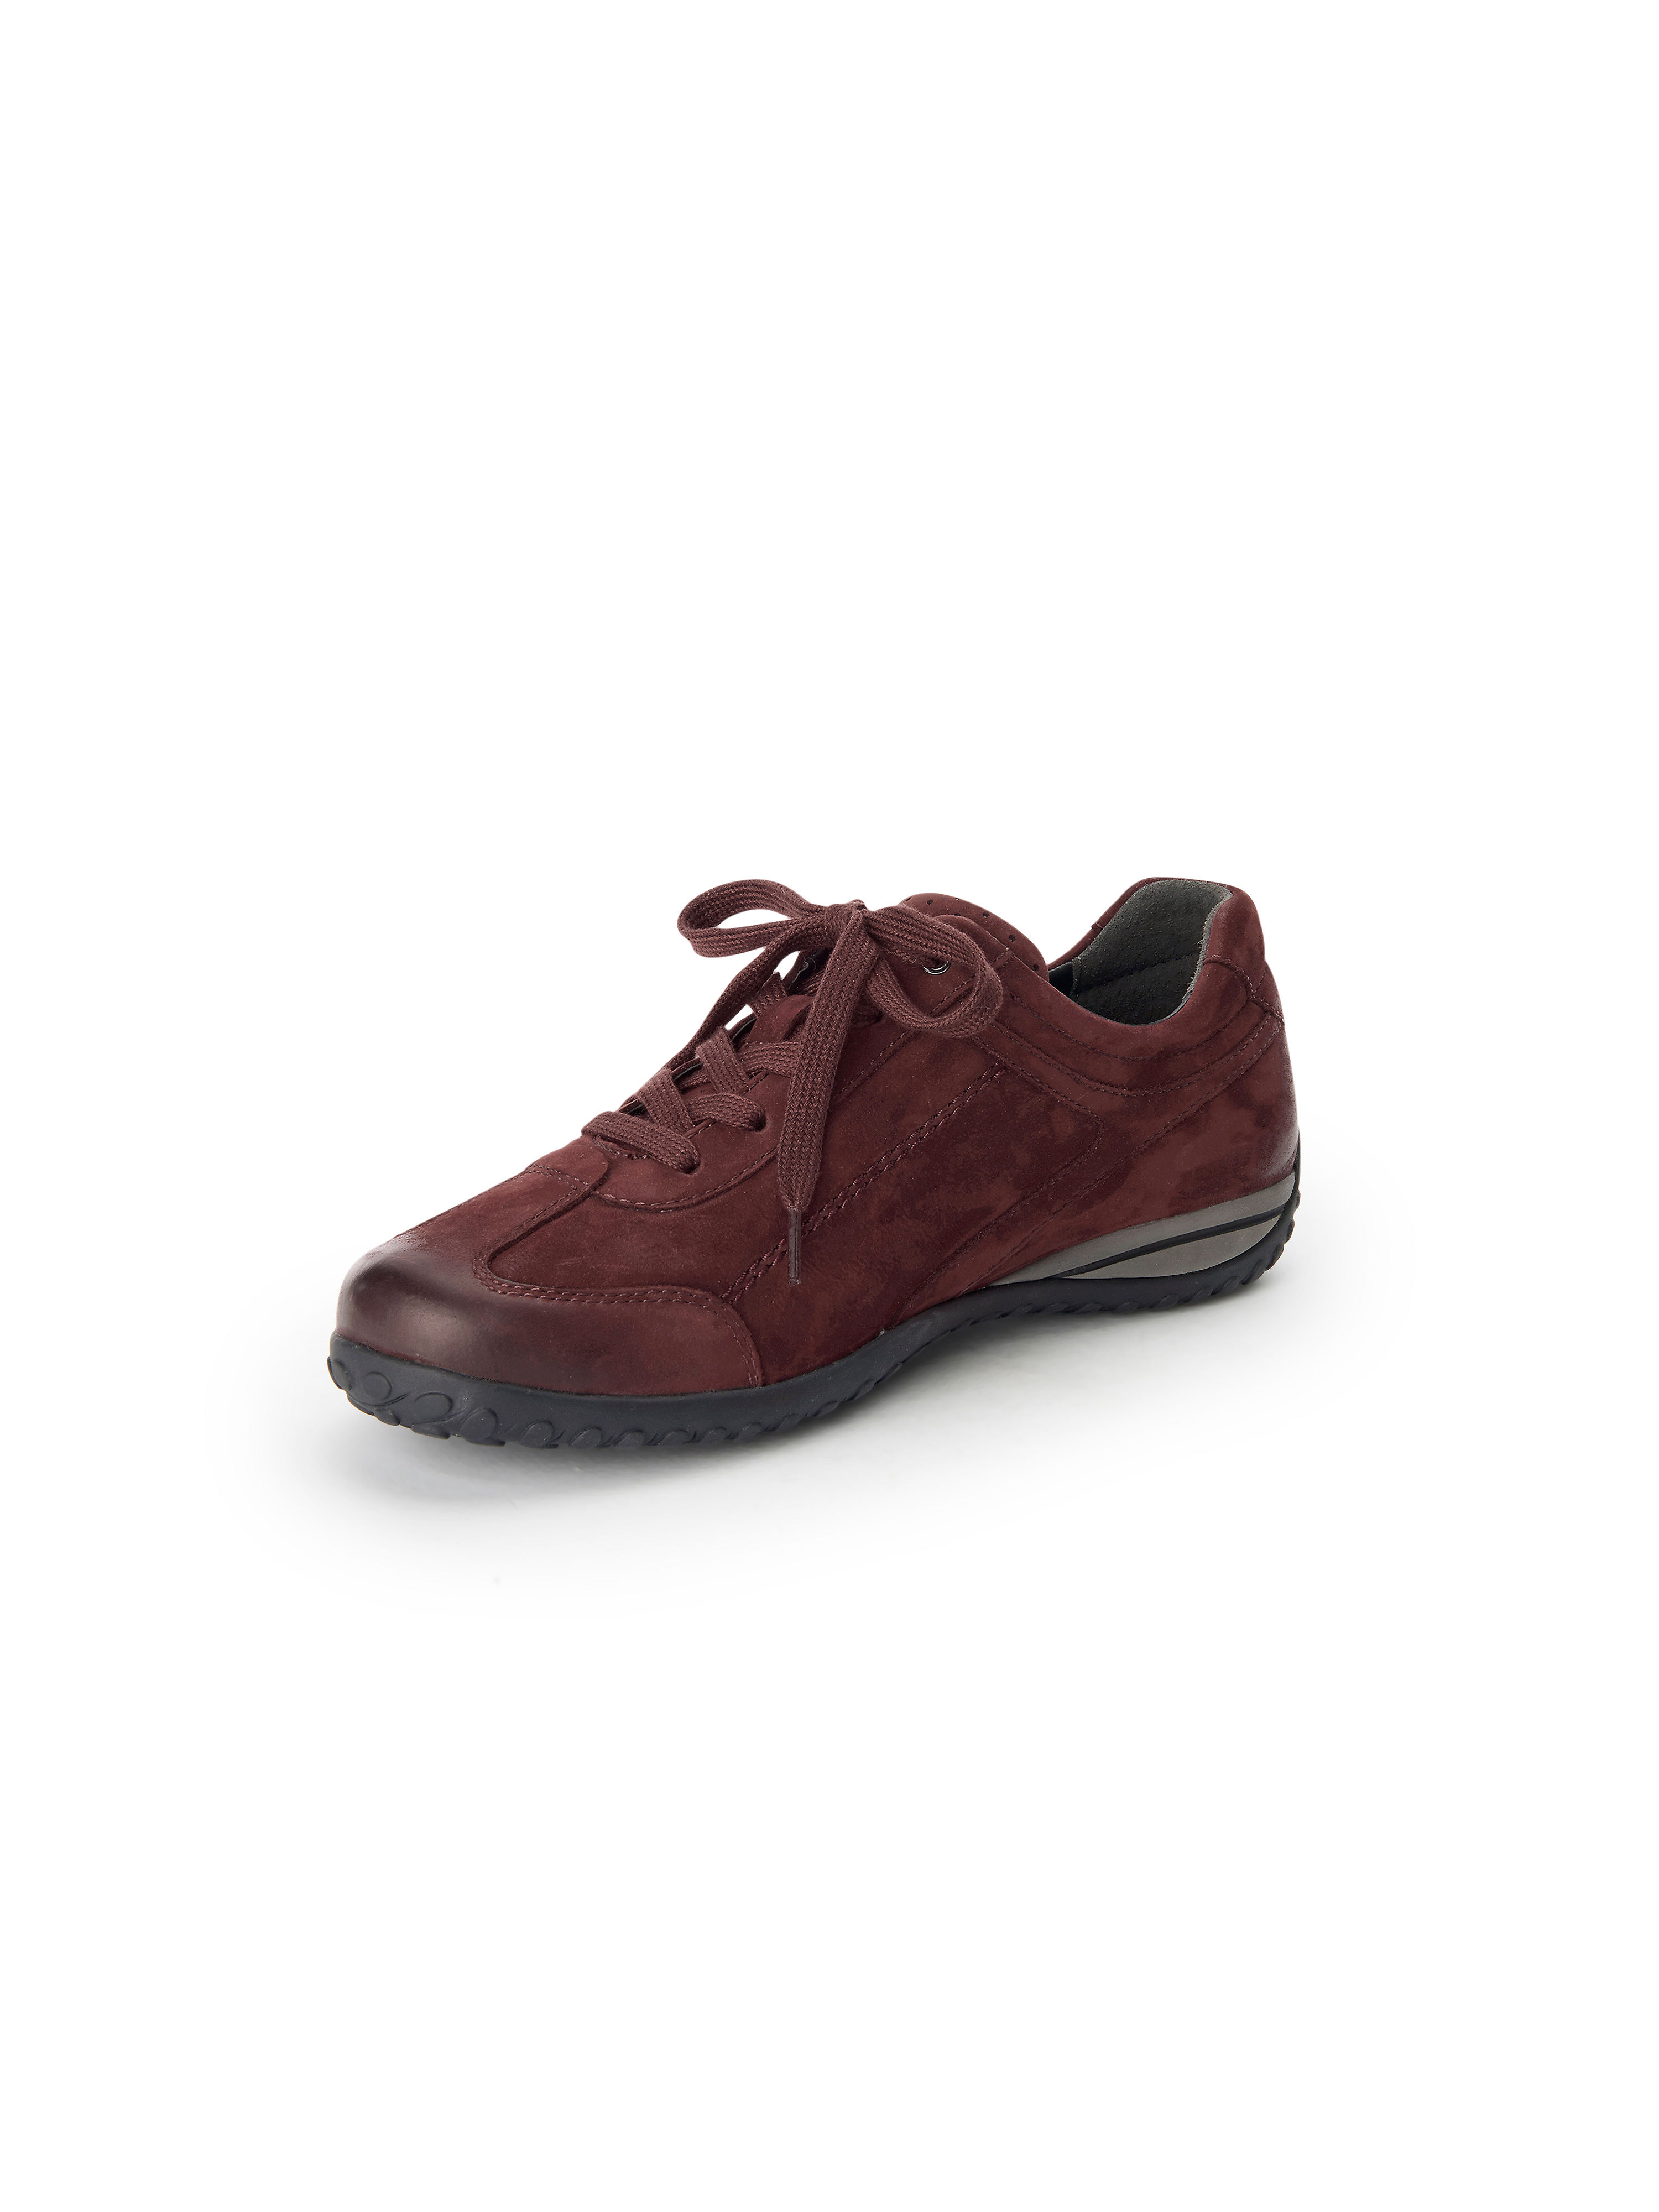 Les sneakers cuir nubuck Gabor rouge taille 35